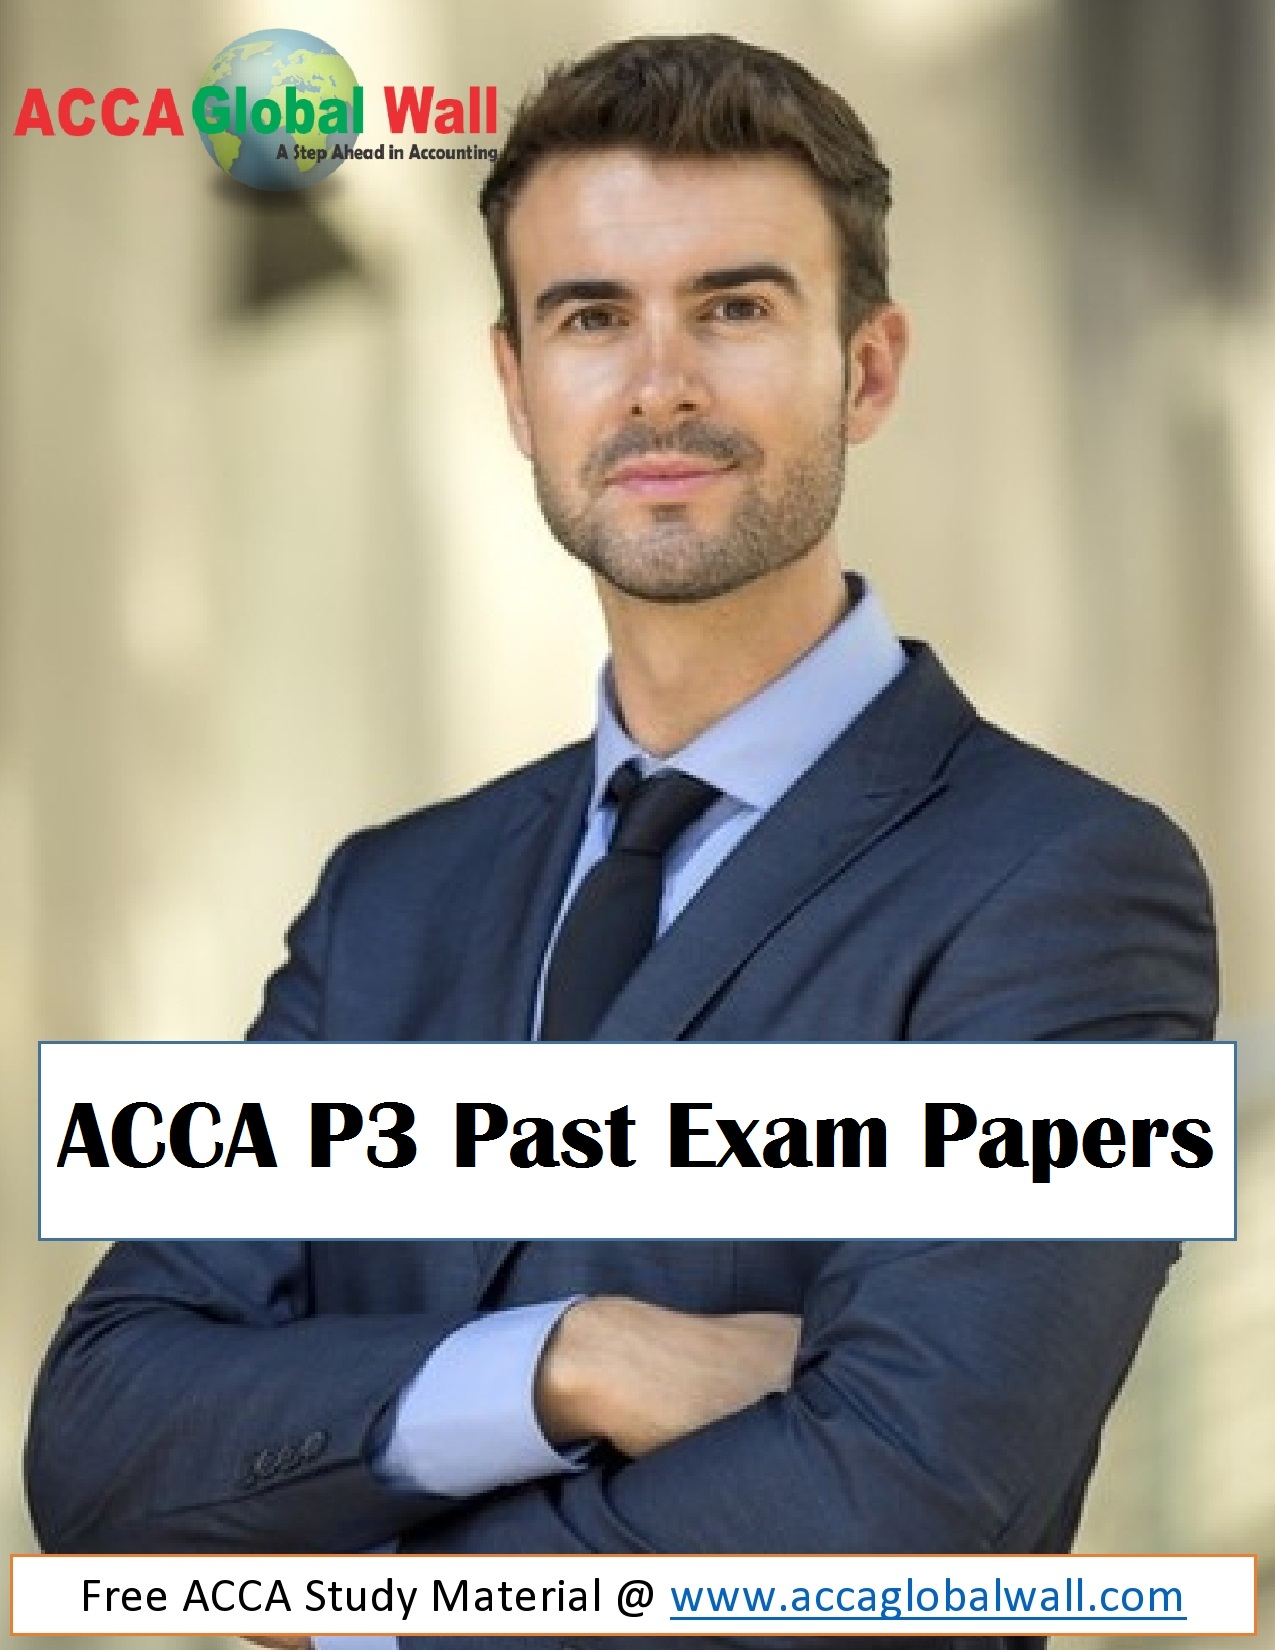 ACCA P3 Past Exam Papers - ACCA Study Material